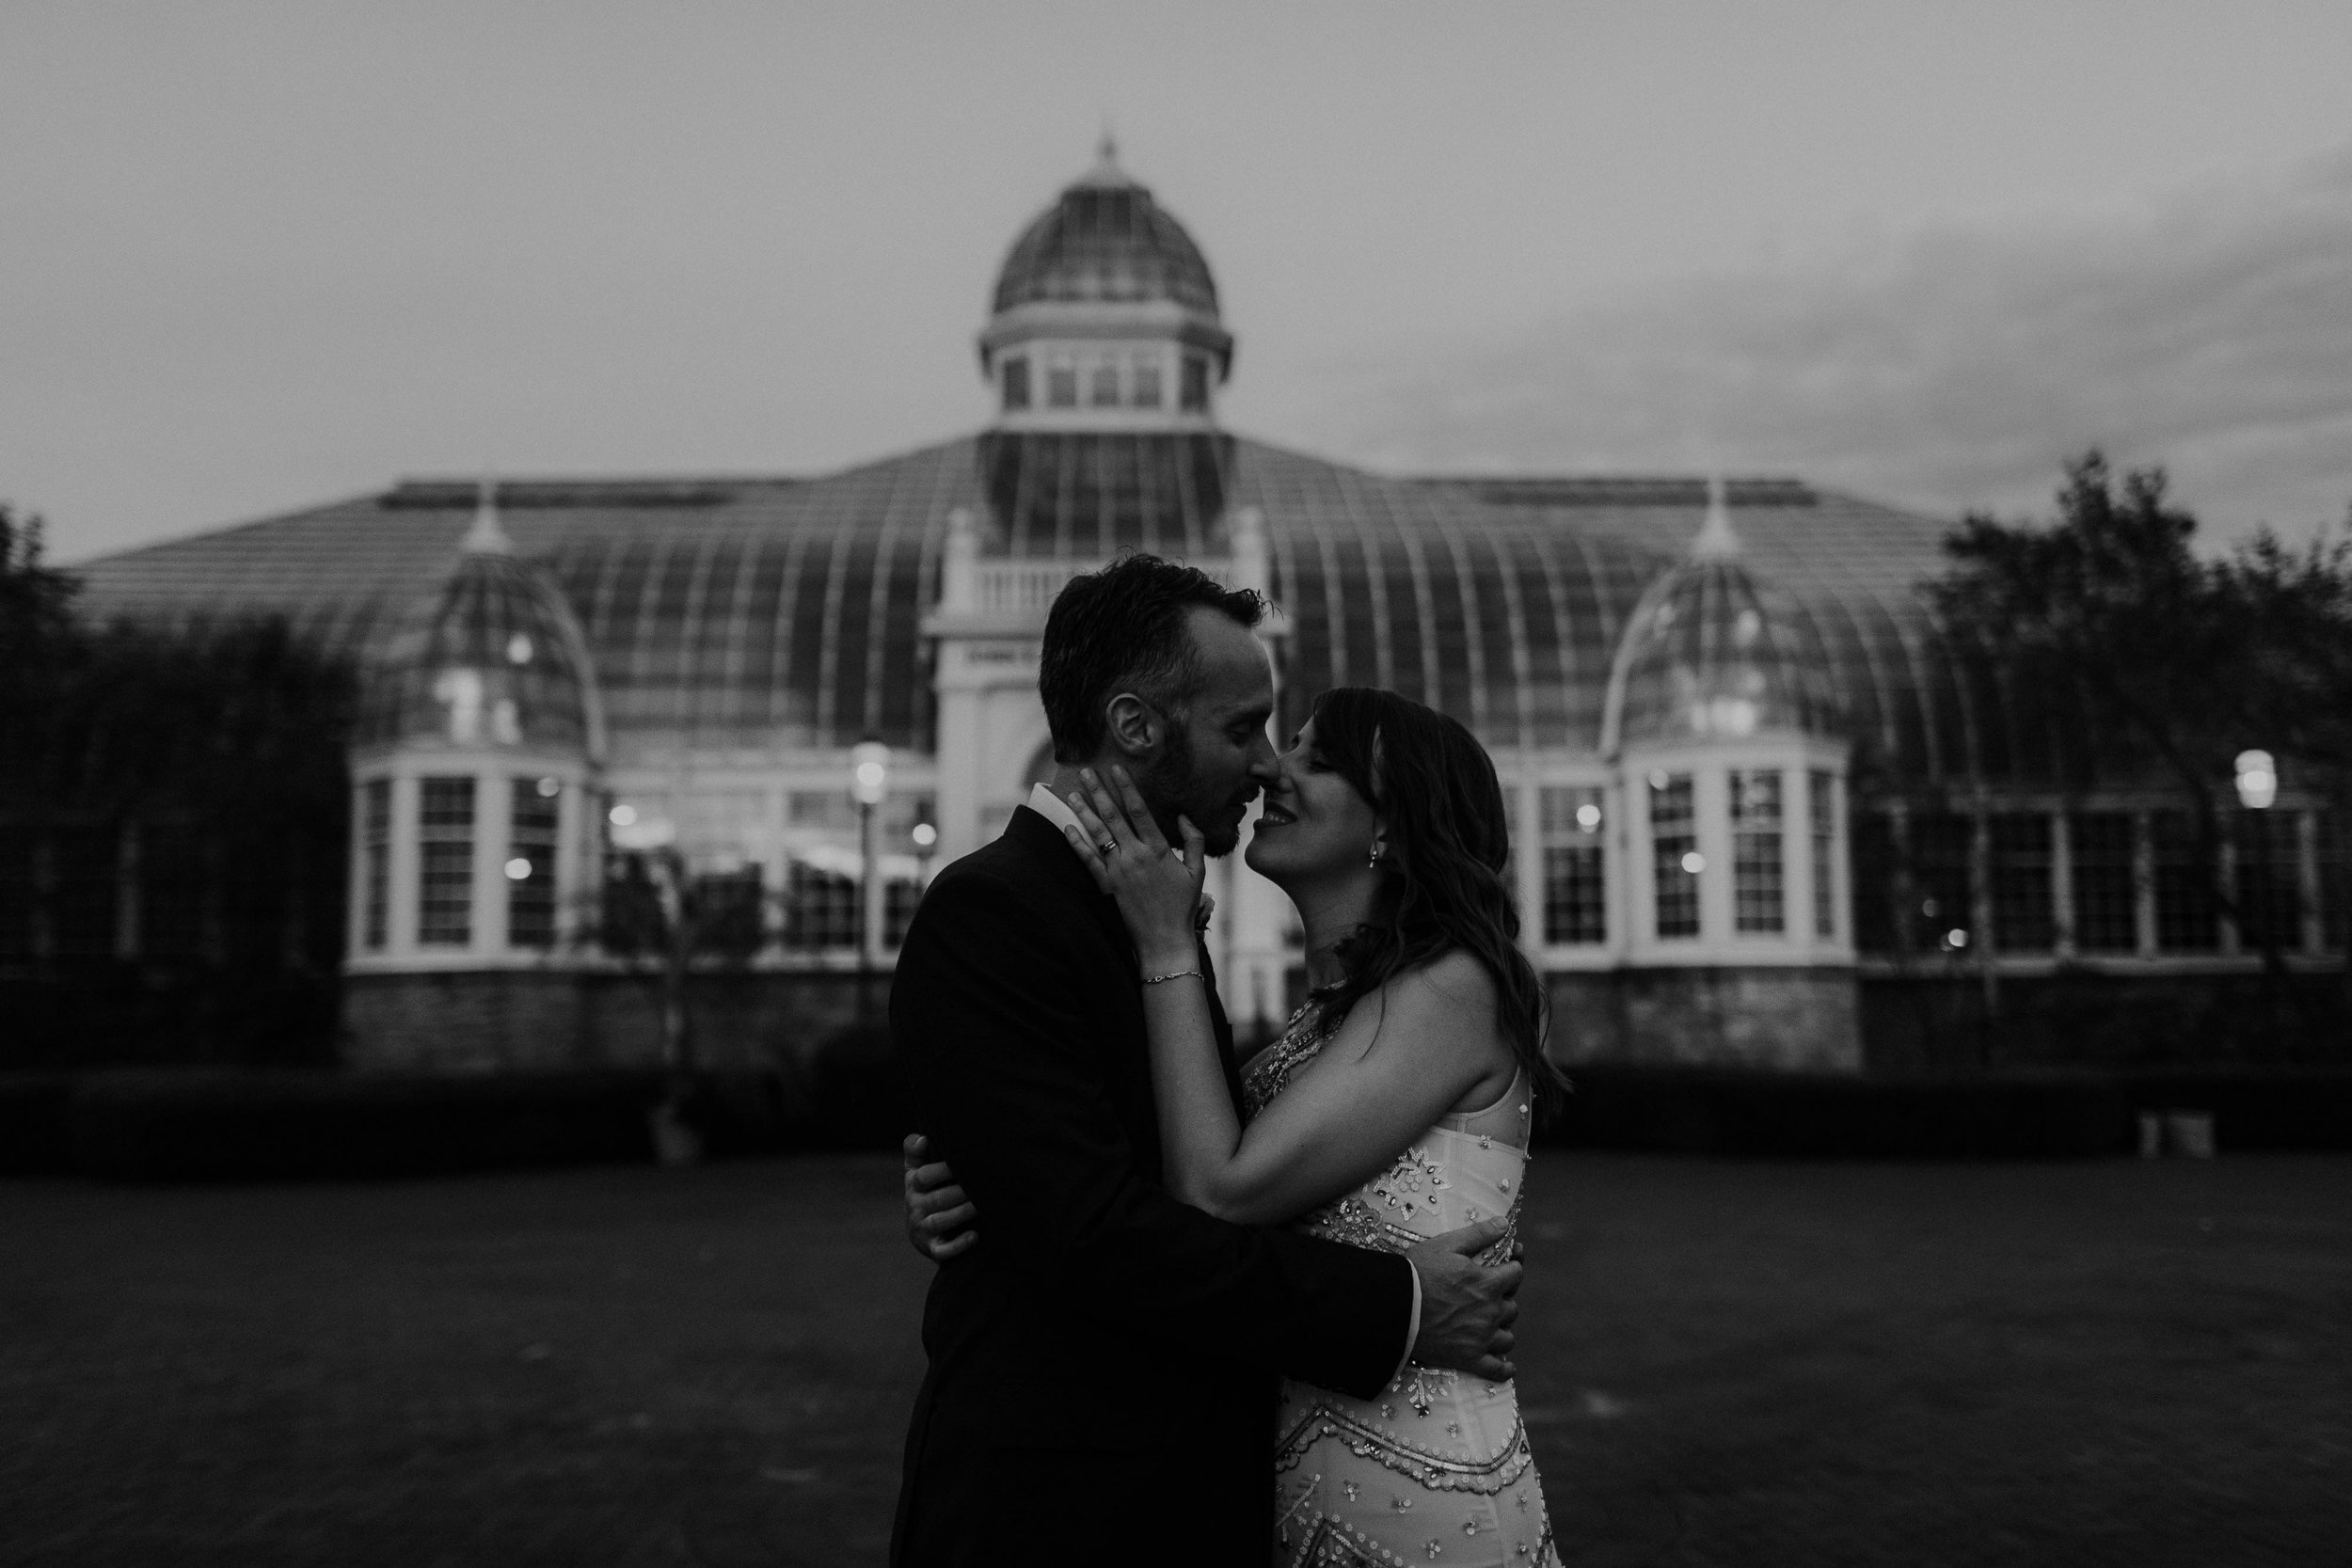 franklin park conservatory wedding columbus ohio wedding photographer grace e jones photography81.jpg